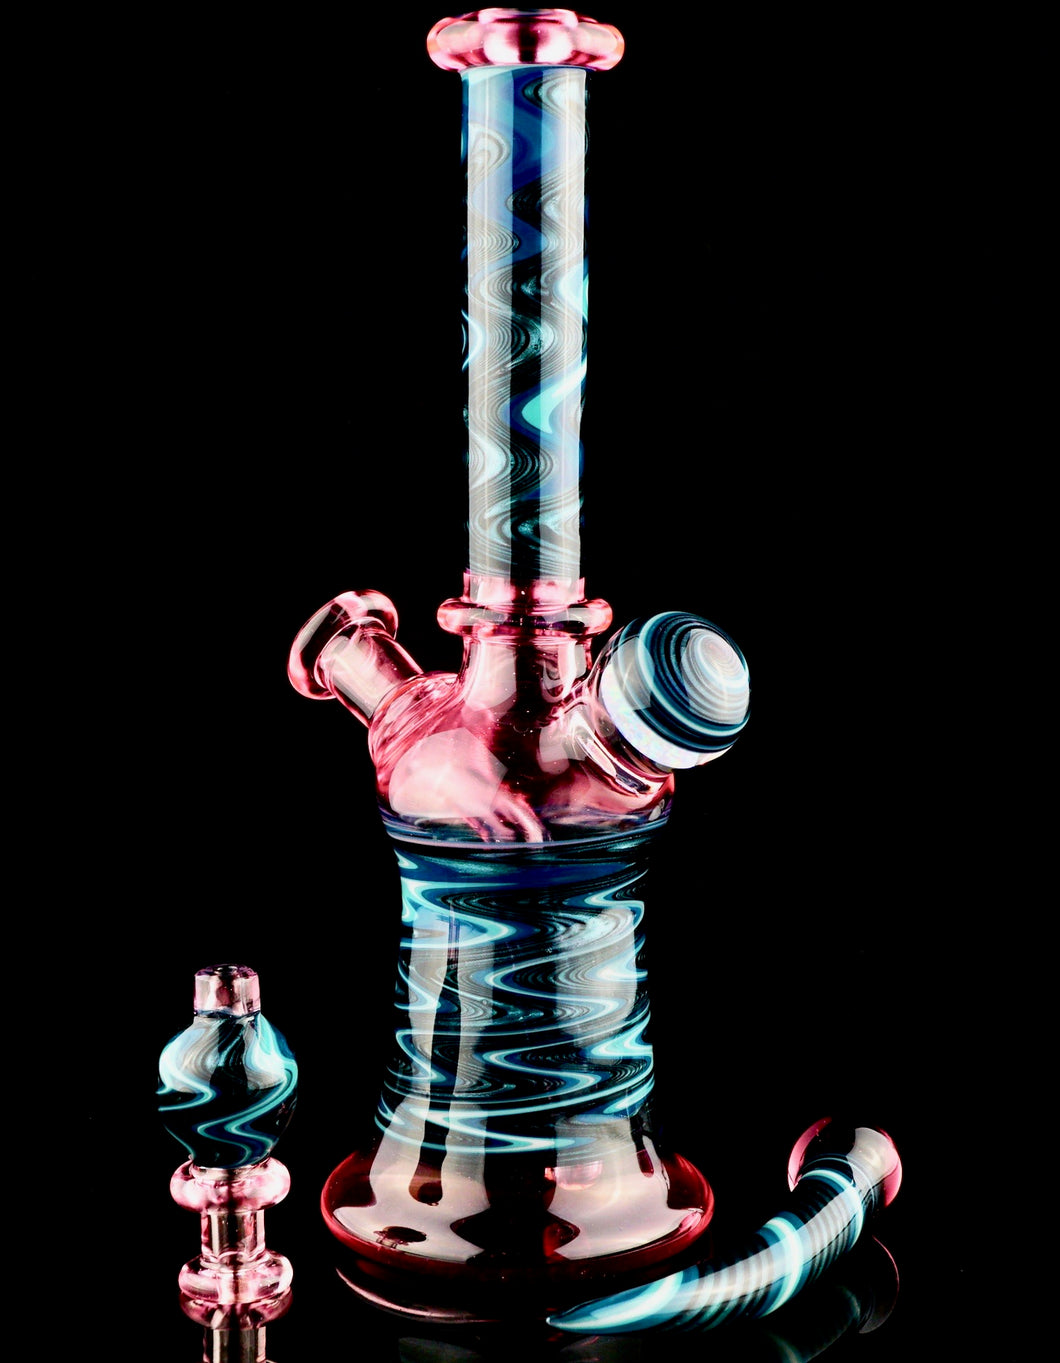 Blueberry Serum and Opal Banger Hanger + Bubble Cap + Dabber Set